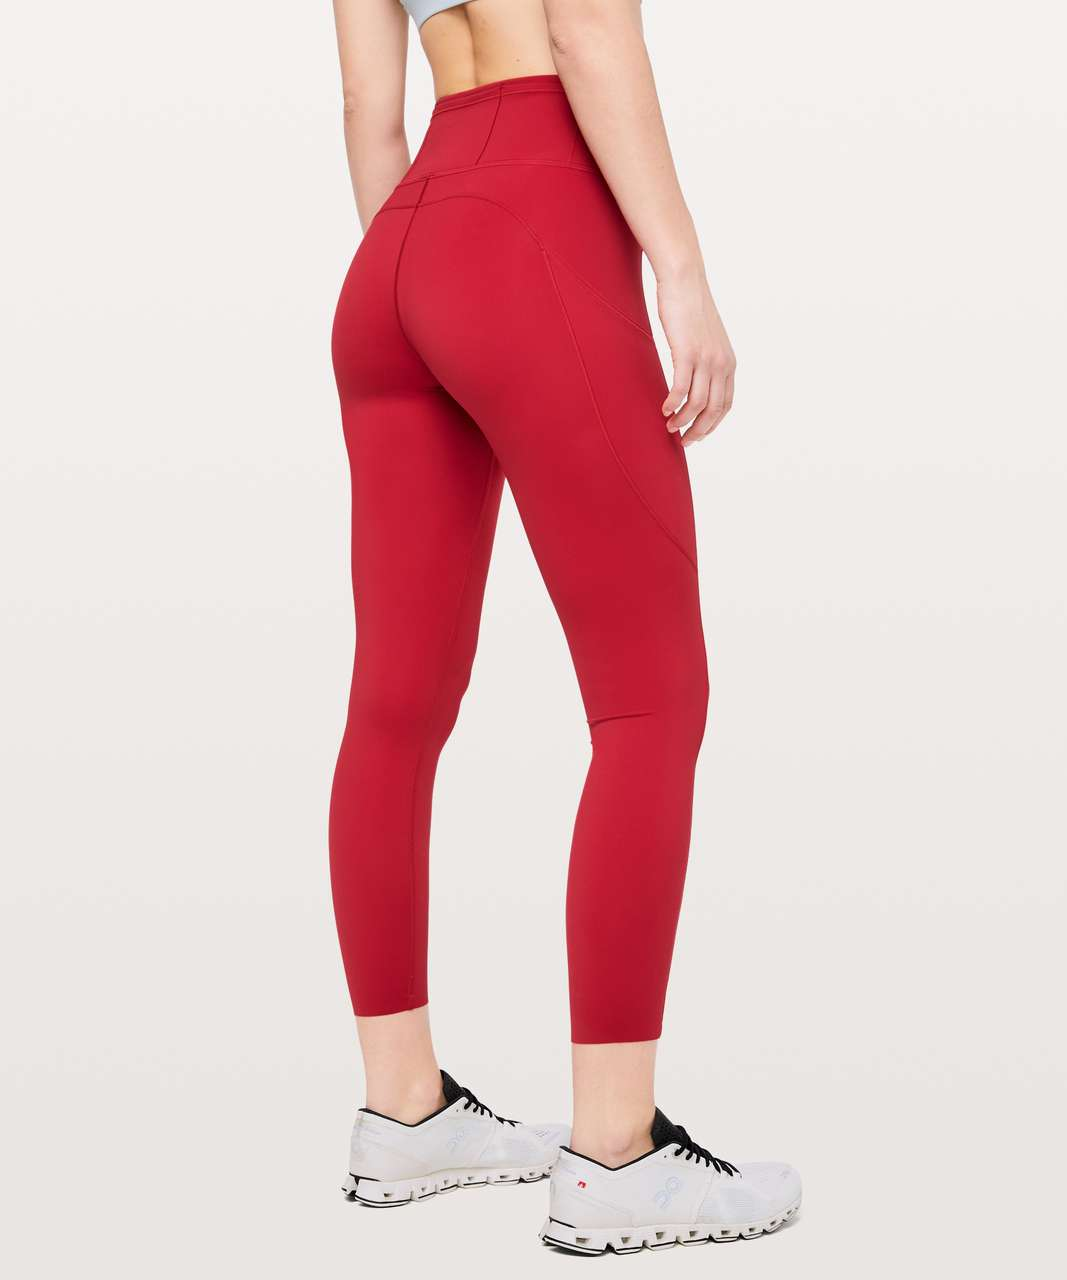 "Lululemon Fast & Free 7/8 Tight II *Non-Reflective Nulux 25"" - Dark Red"